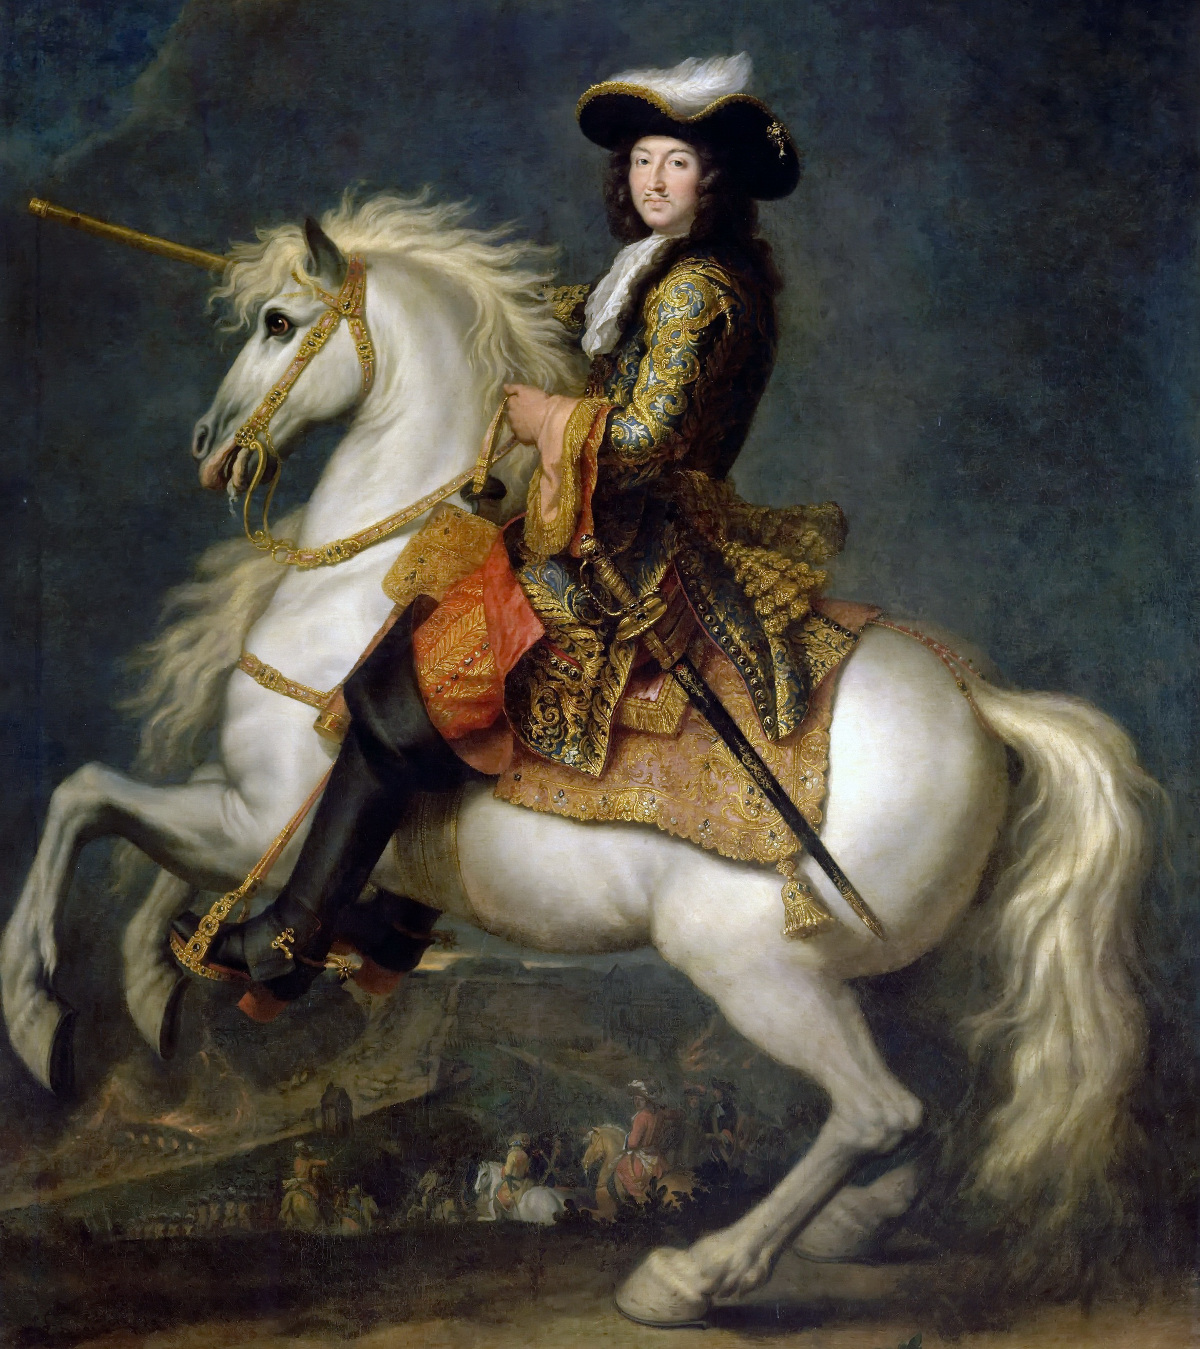 Equestrian portrait of Louis XIV of France by René-Antoine Houasse, c.1670